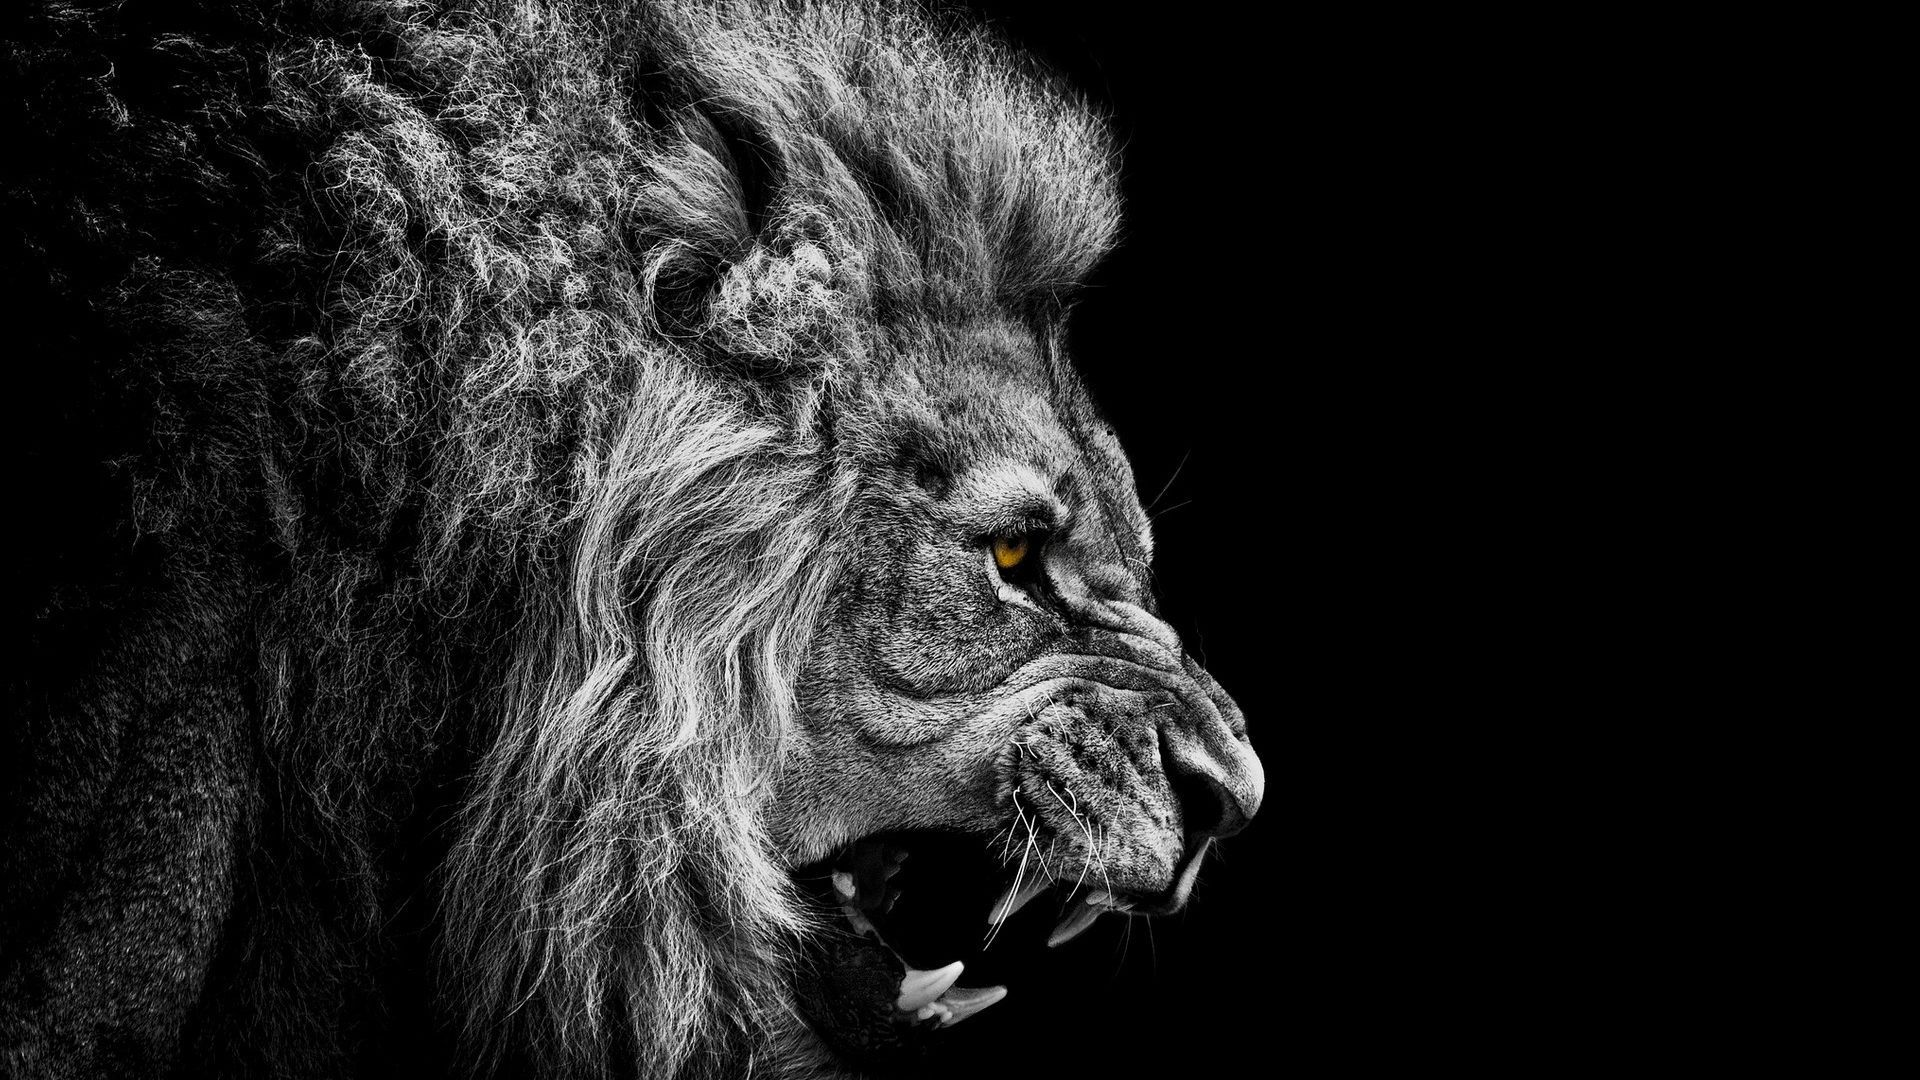 Furious Lion Wallpaper Hd 4238871 1920x1080 All For Desktop